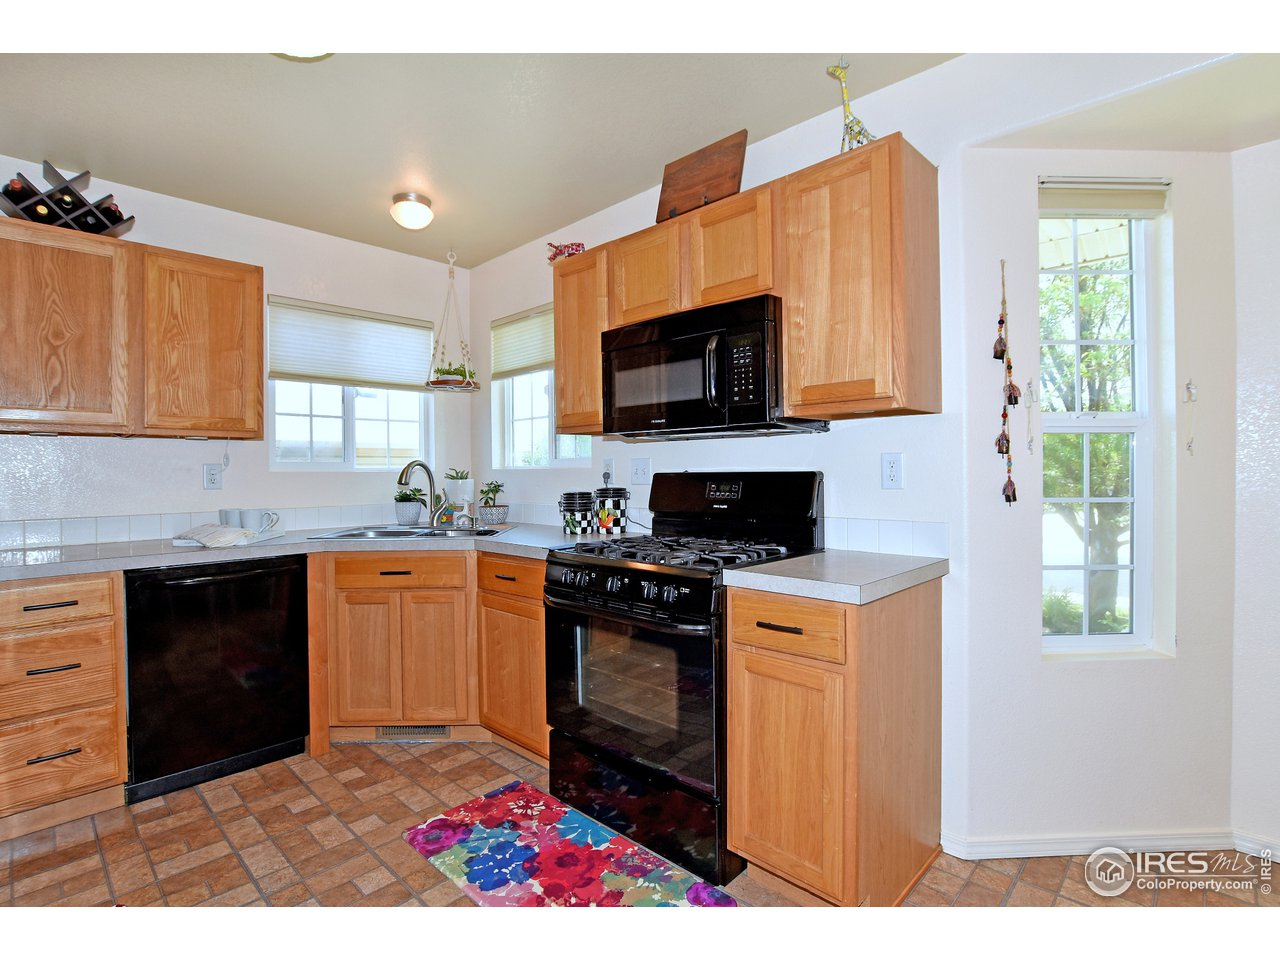 Lots of counter space and corner window over sink